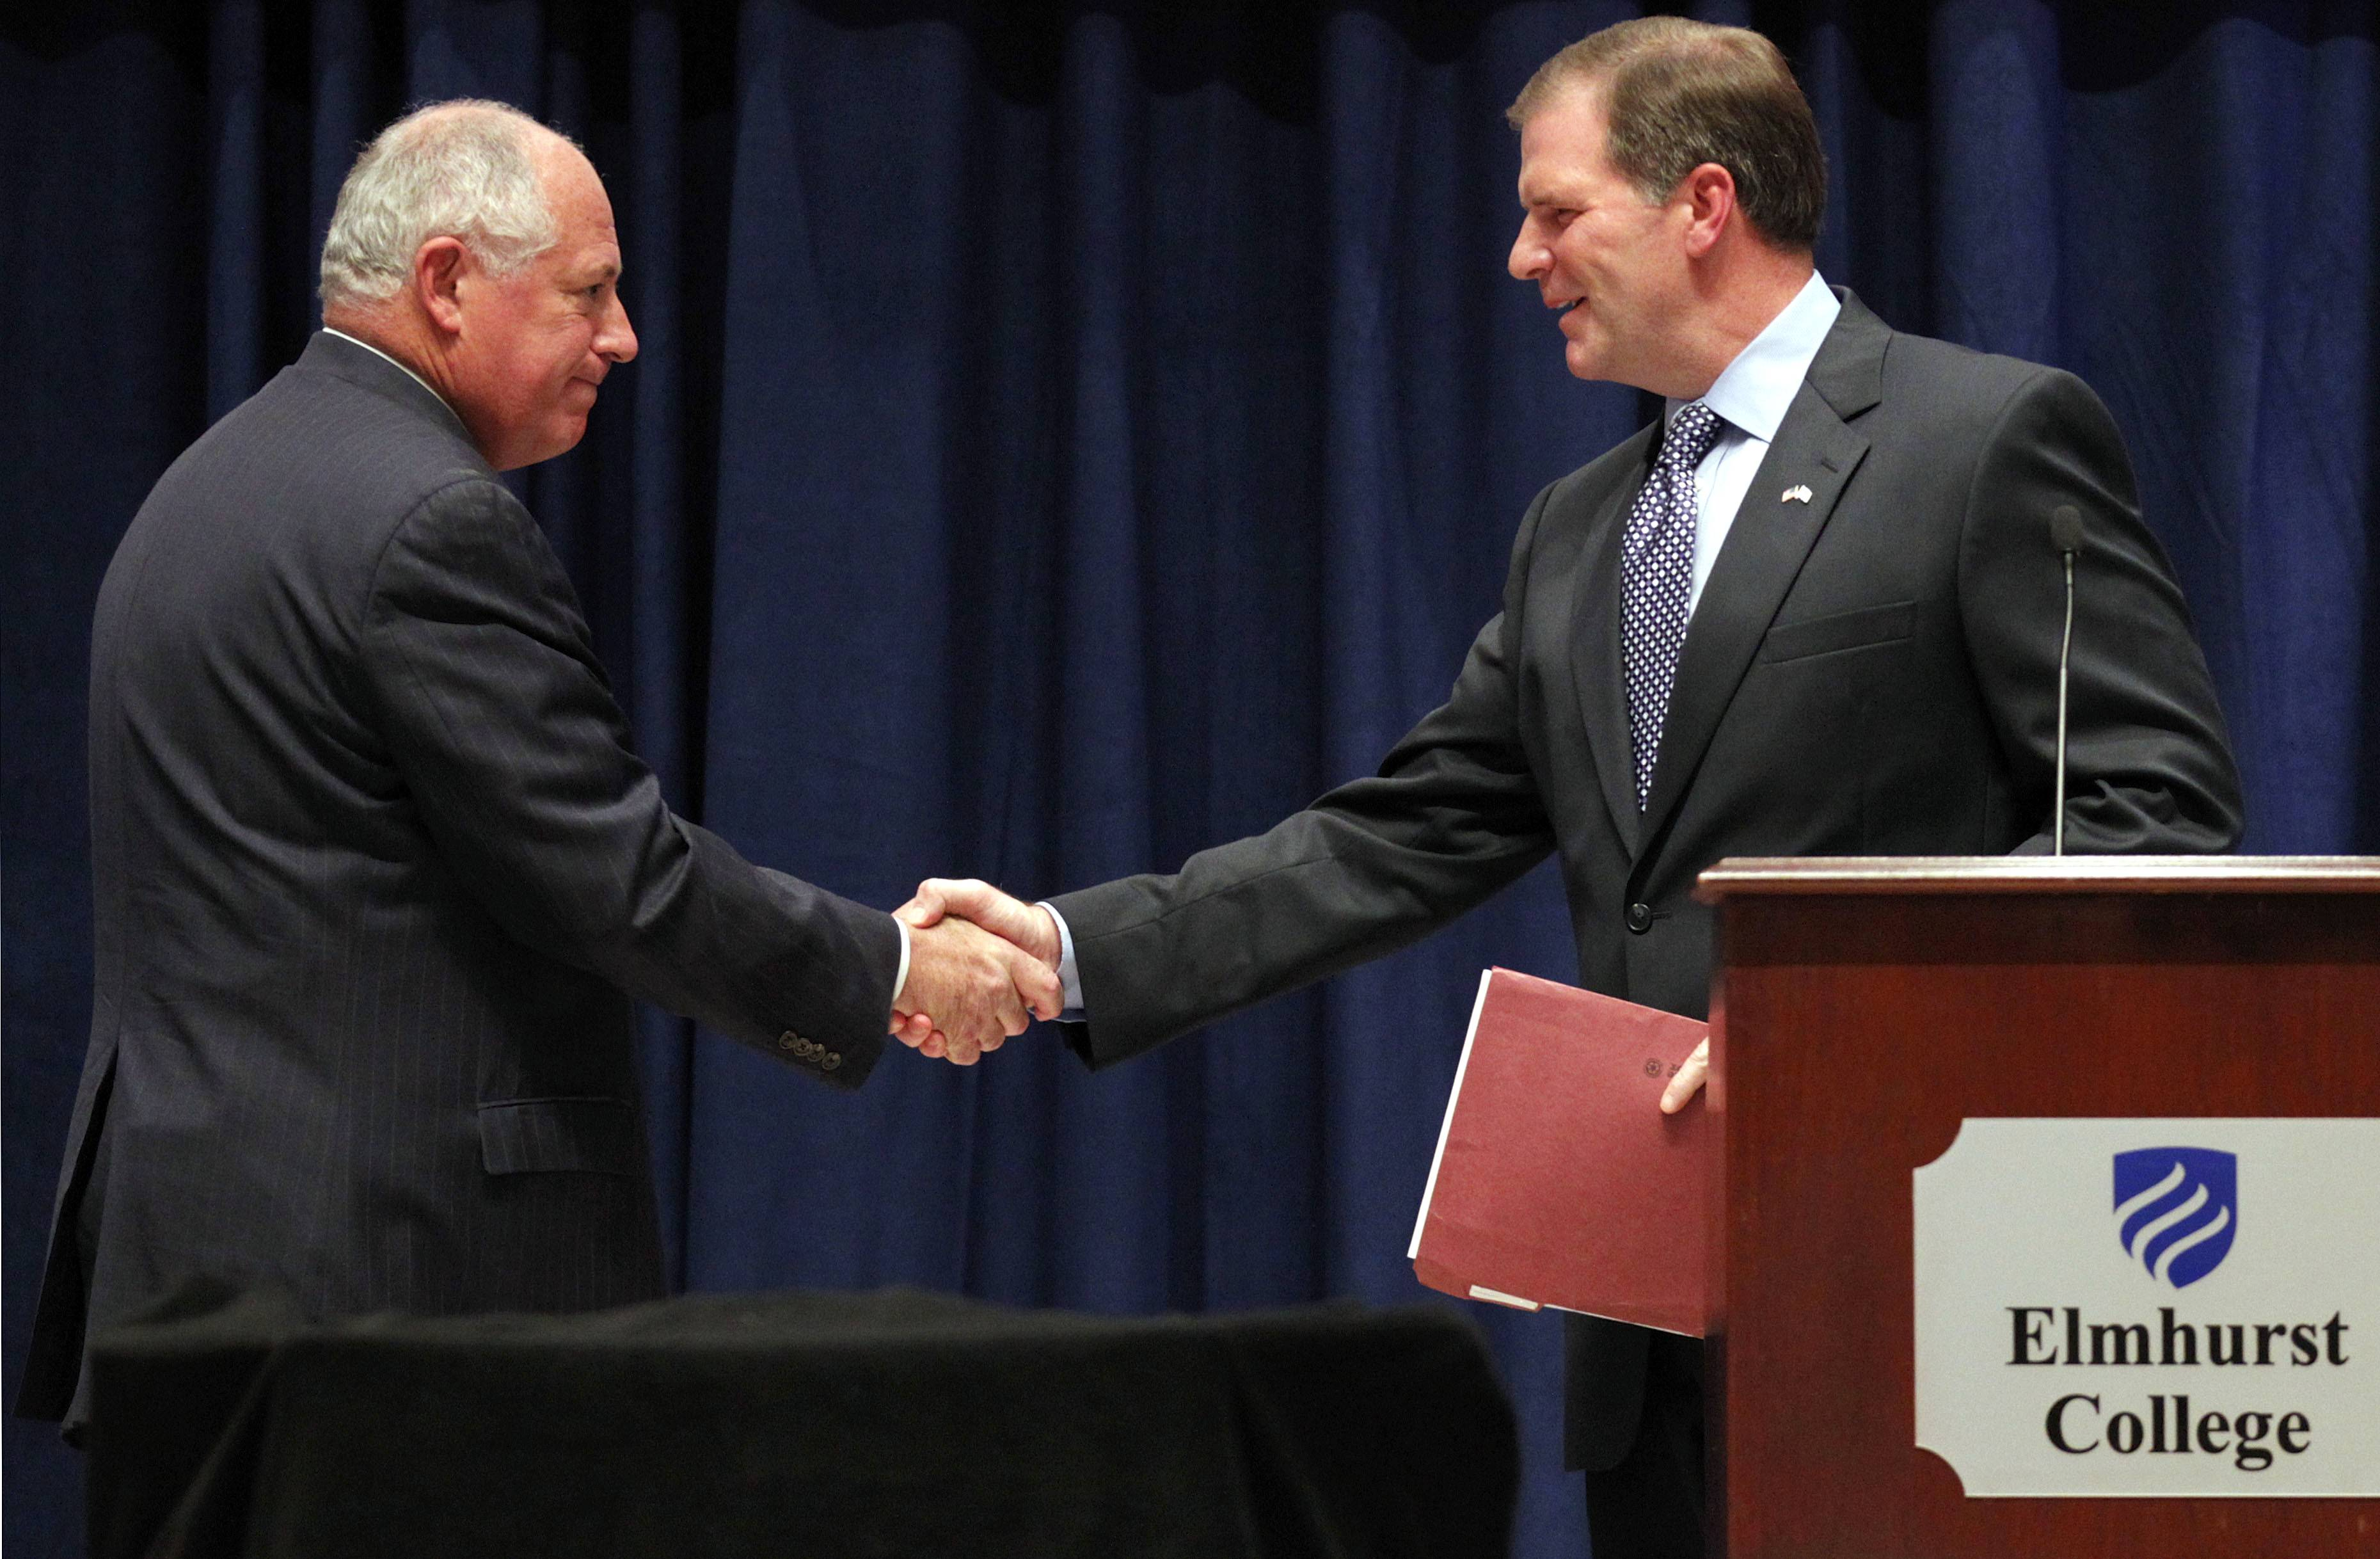 Gov. Pat Quinn and state Sen. Bill Brady shake hands after a debate at Elmhurst College on Sunday.